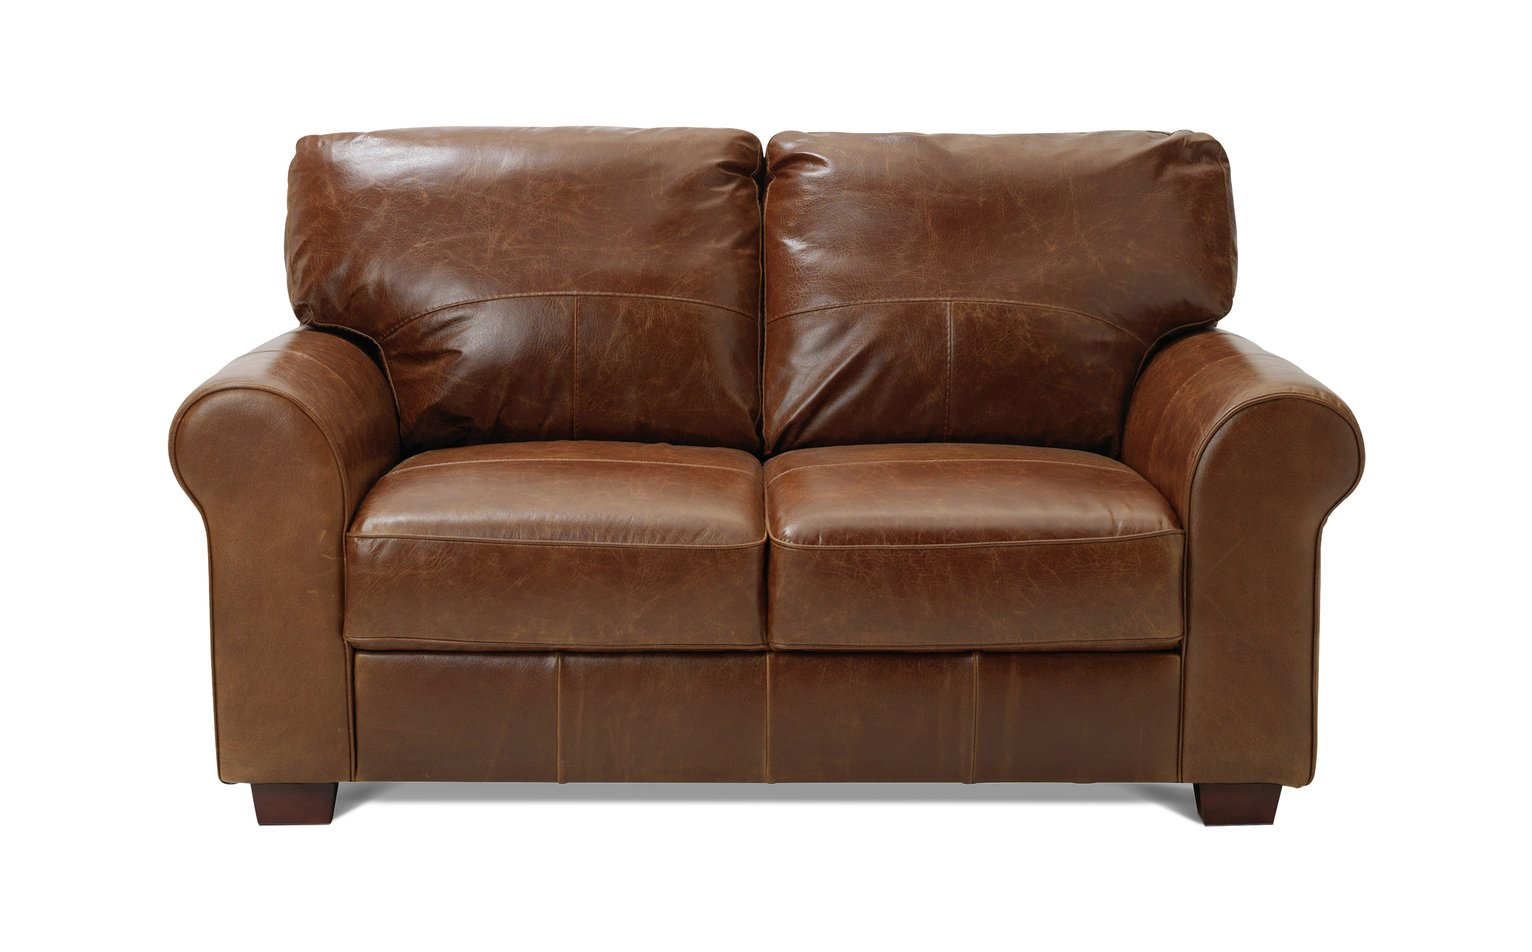 Argos Home Salisbury 2 Seater Leather Sofa - Tan